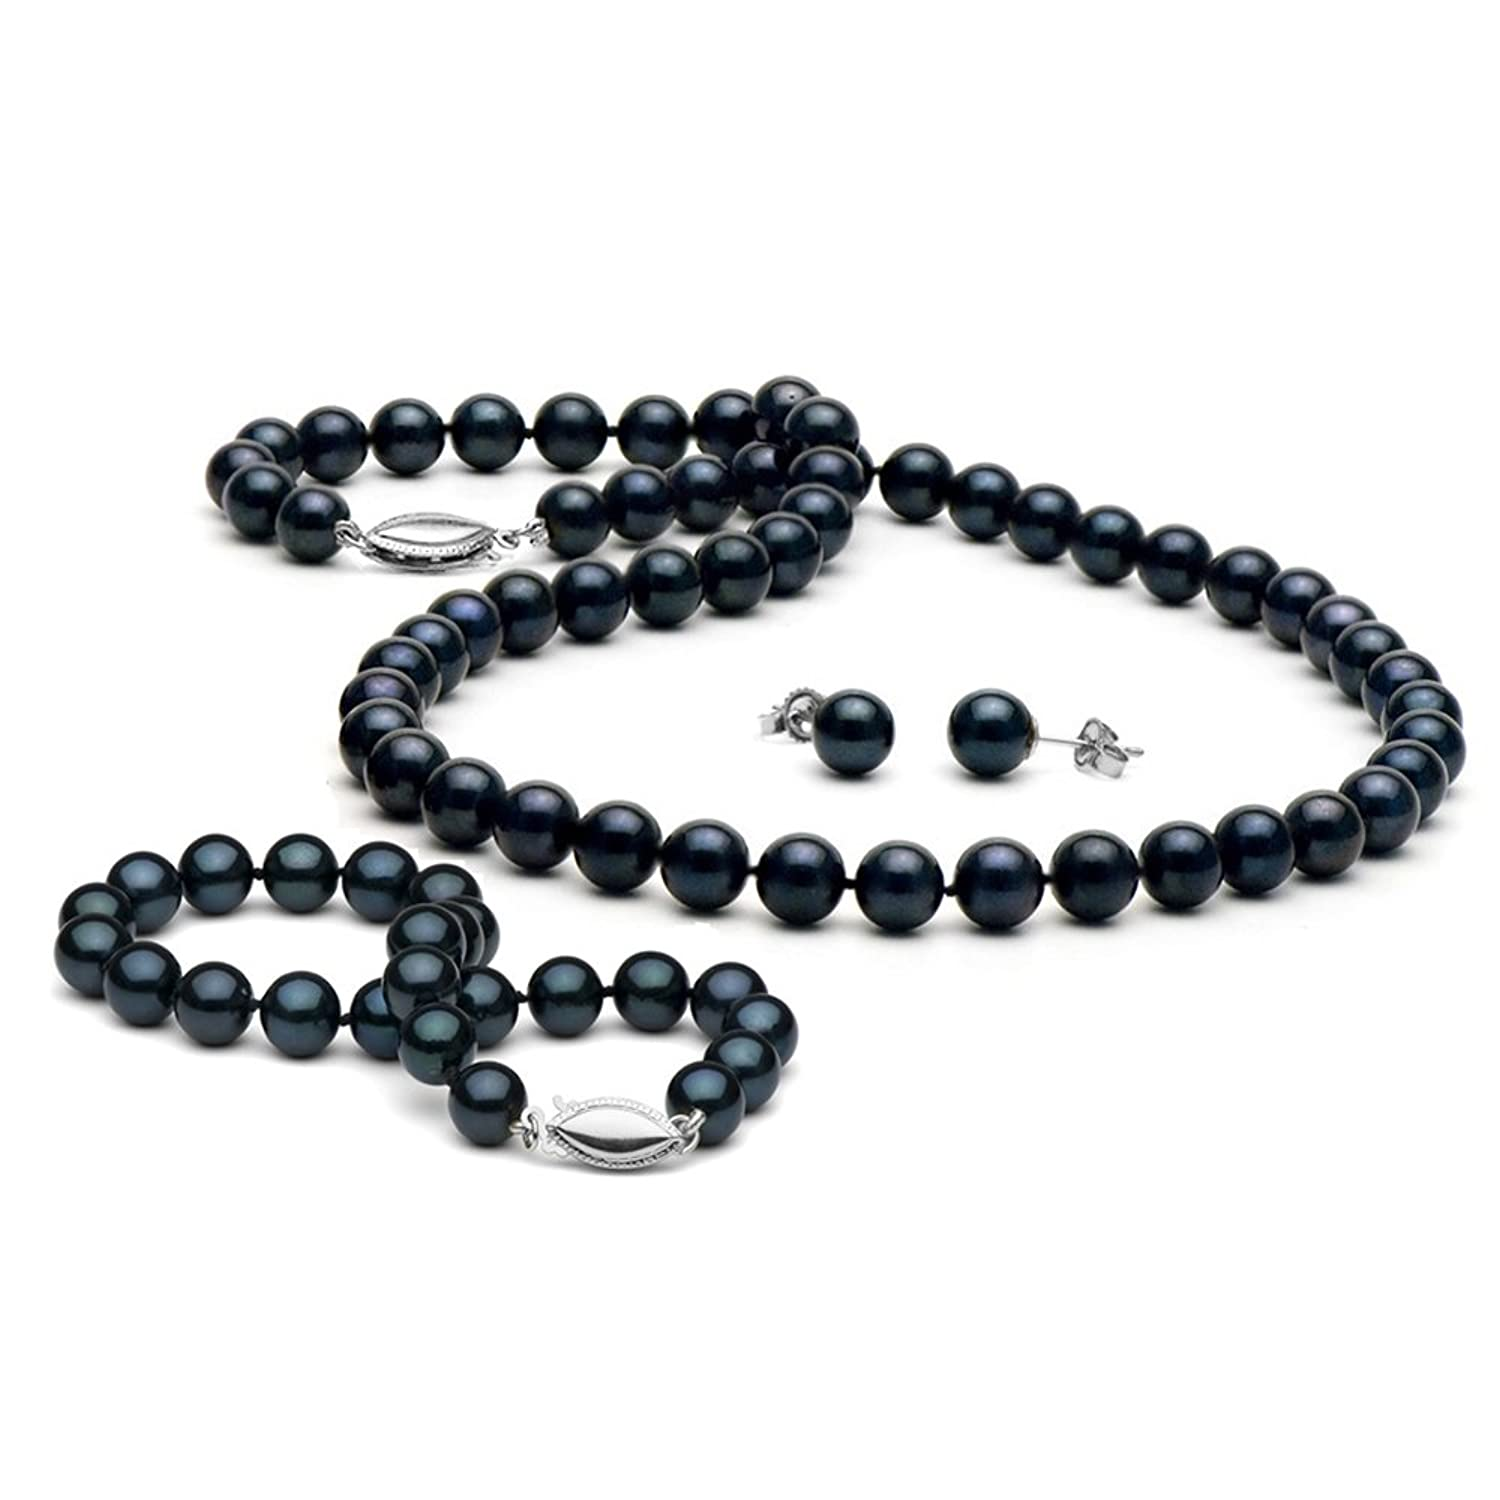 14K Cultured Saltwater Black Akoya Pearl 3-Piece Jewelry Set, 6.5-7.0mm - White Gold Clasps